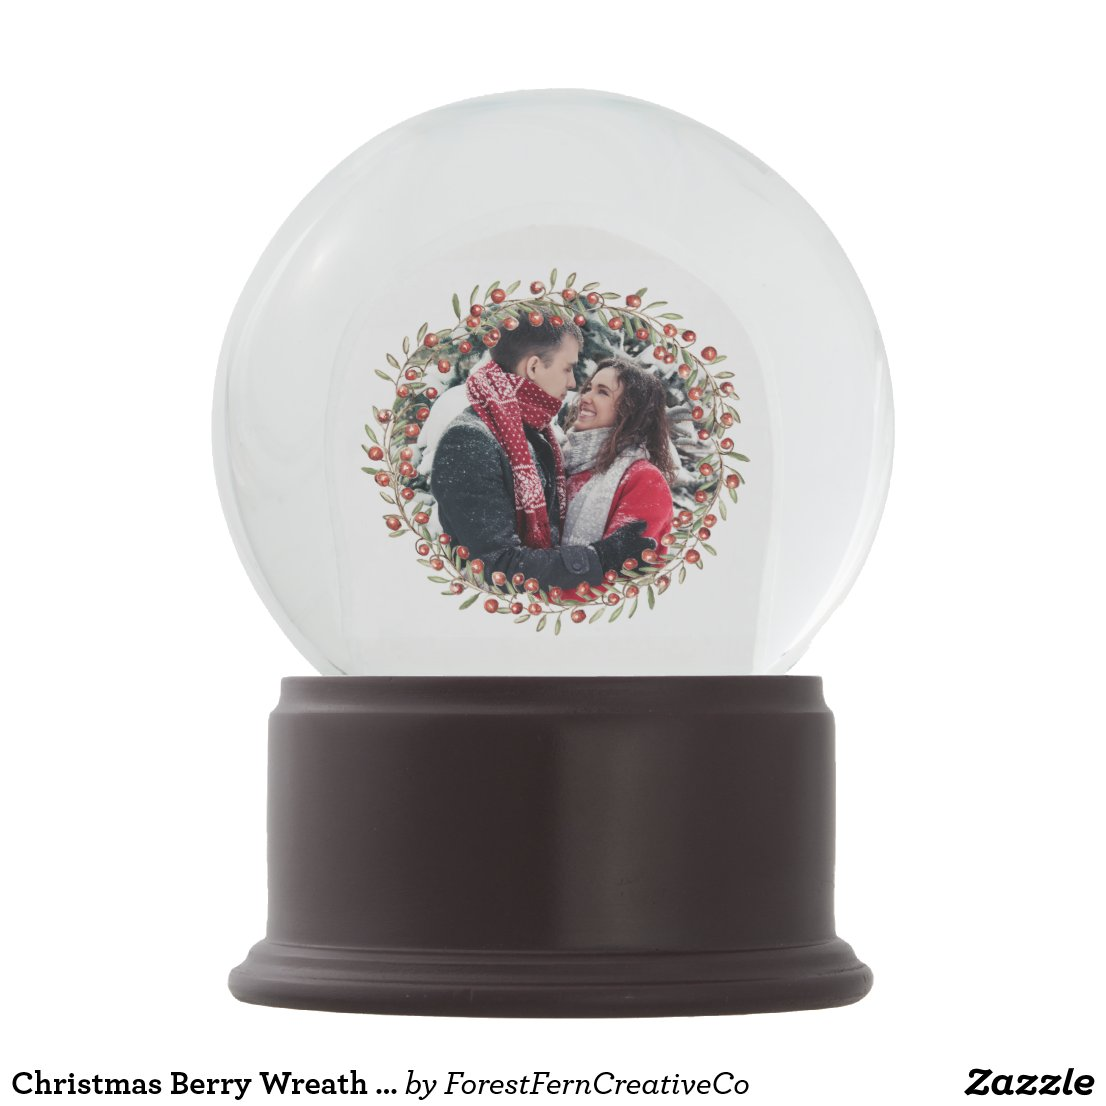 Christmas Berry Wreath & Floral | Snow Globe